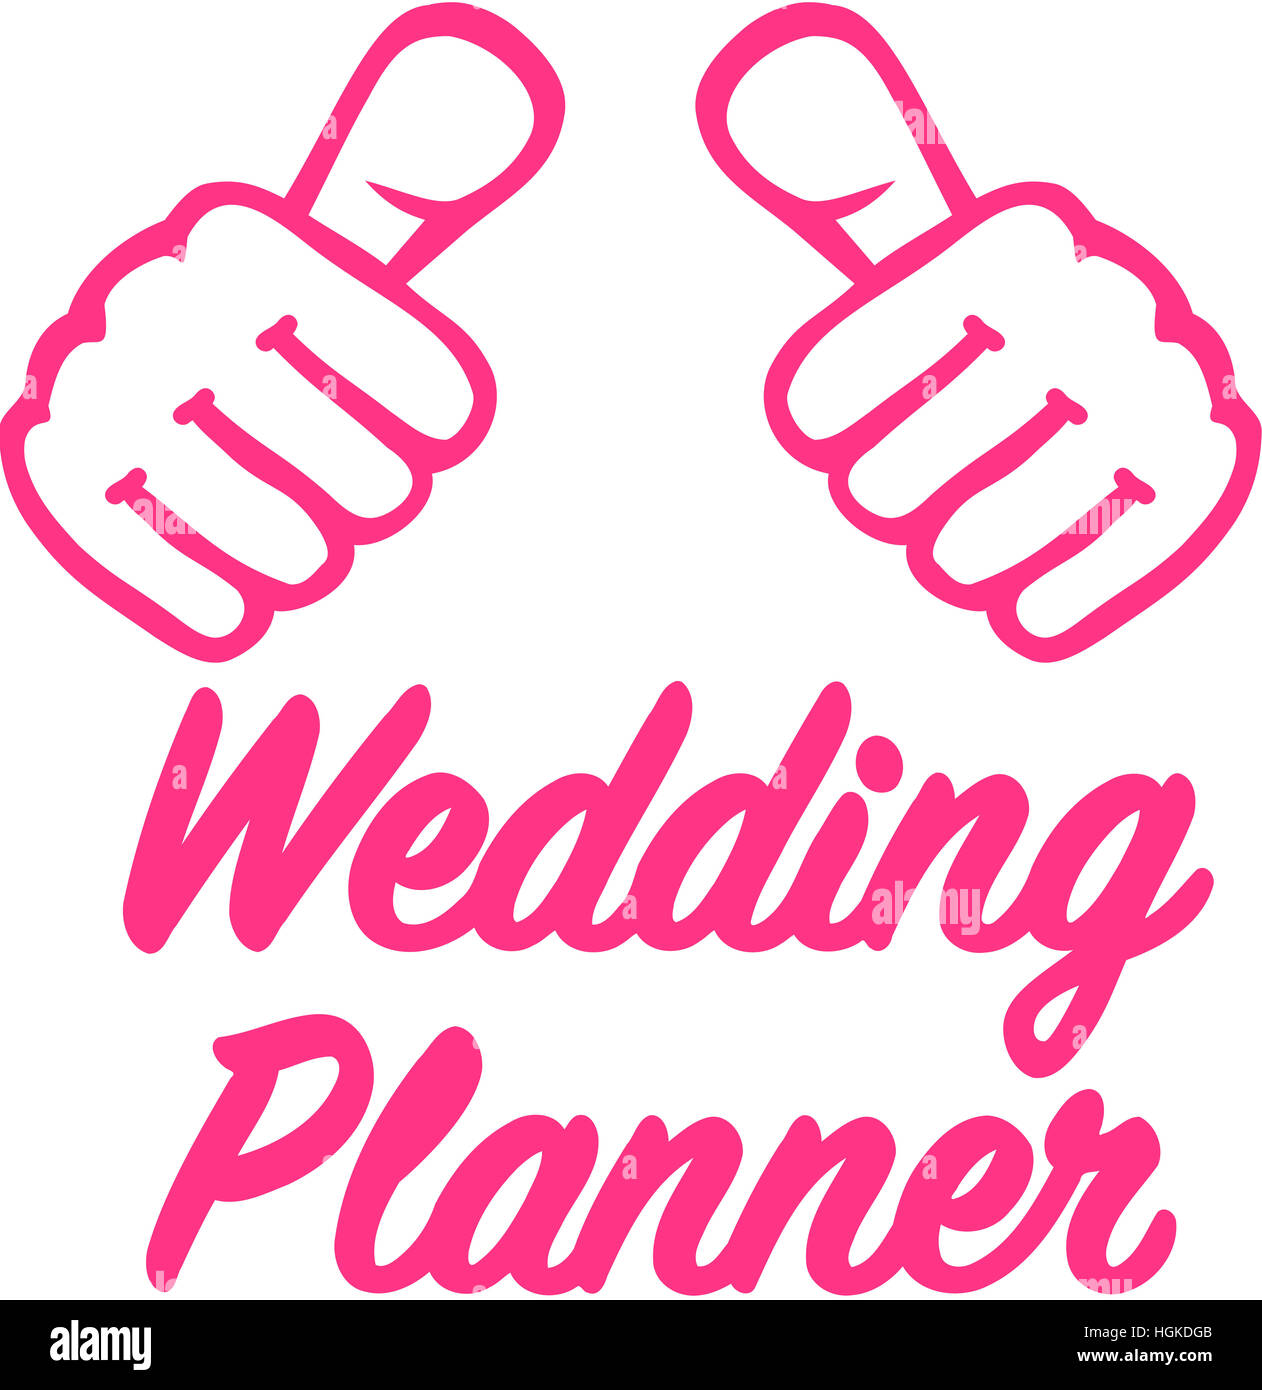 Wedding Planner With Thumbs T Shirt Design Stock Photo 130734811